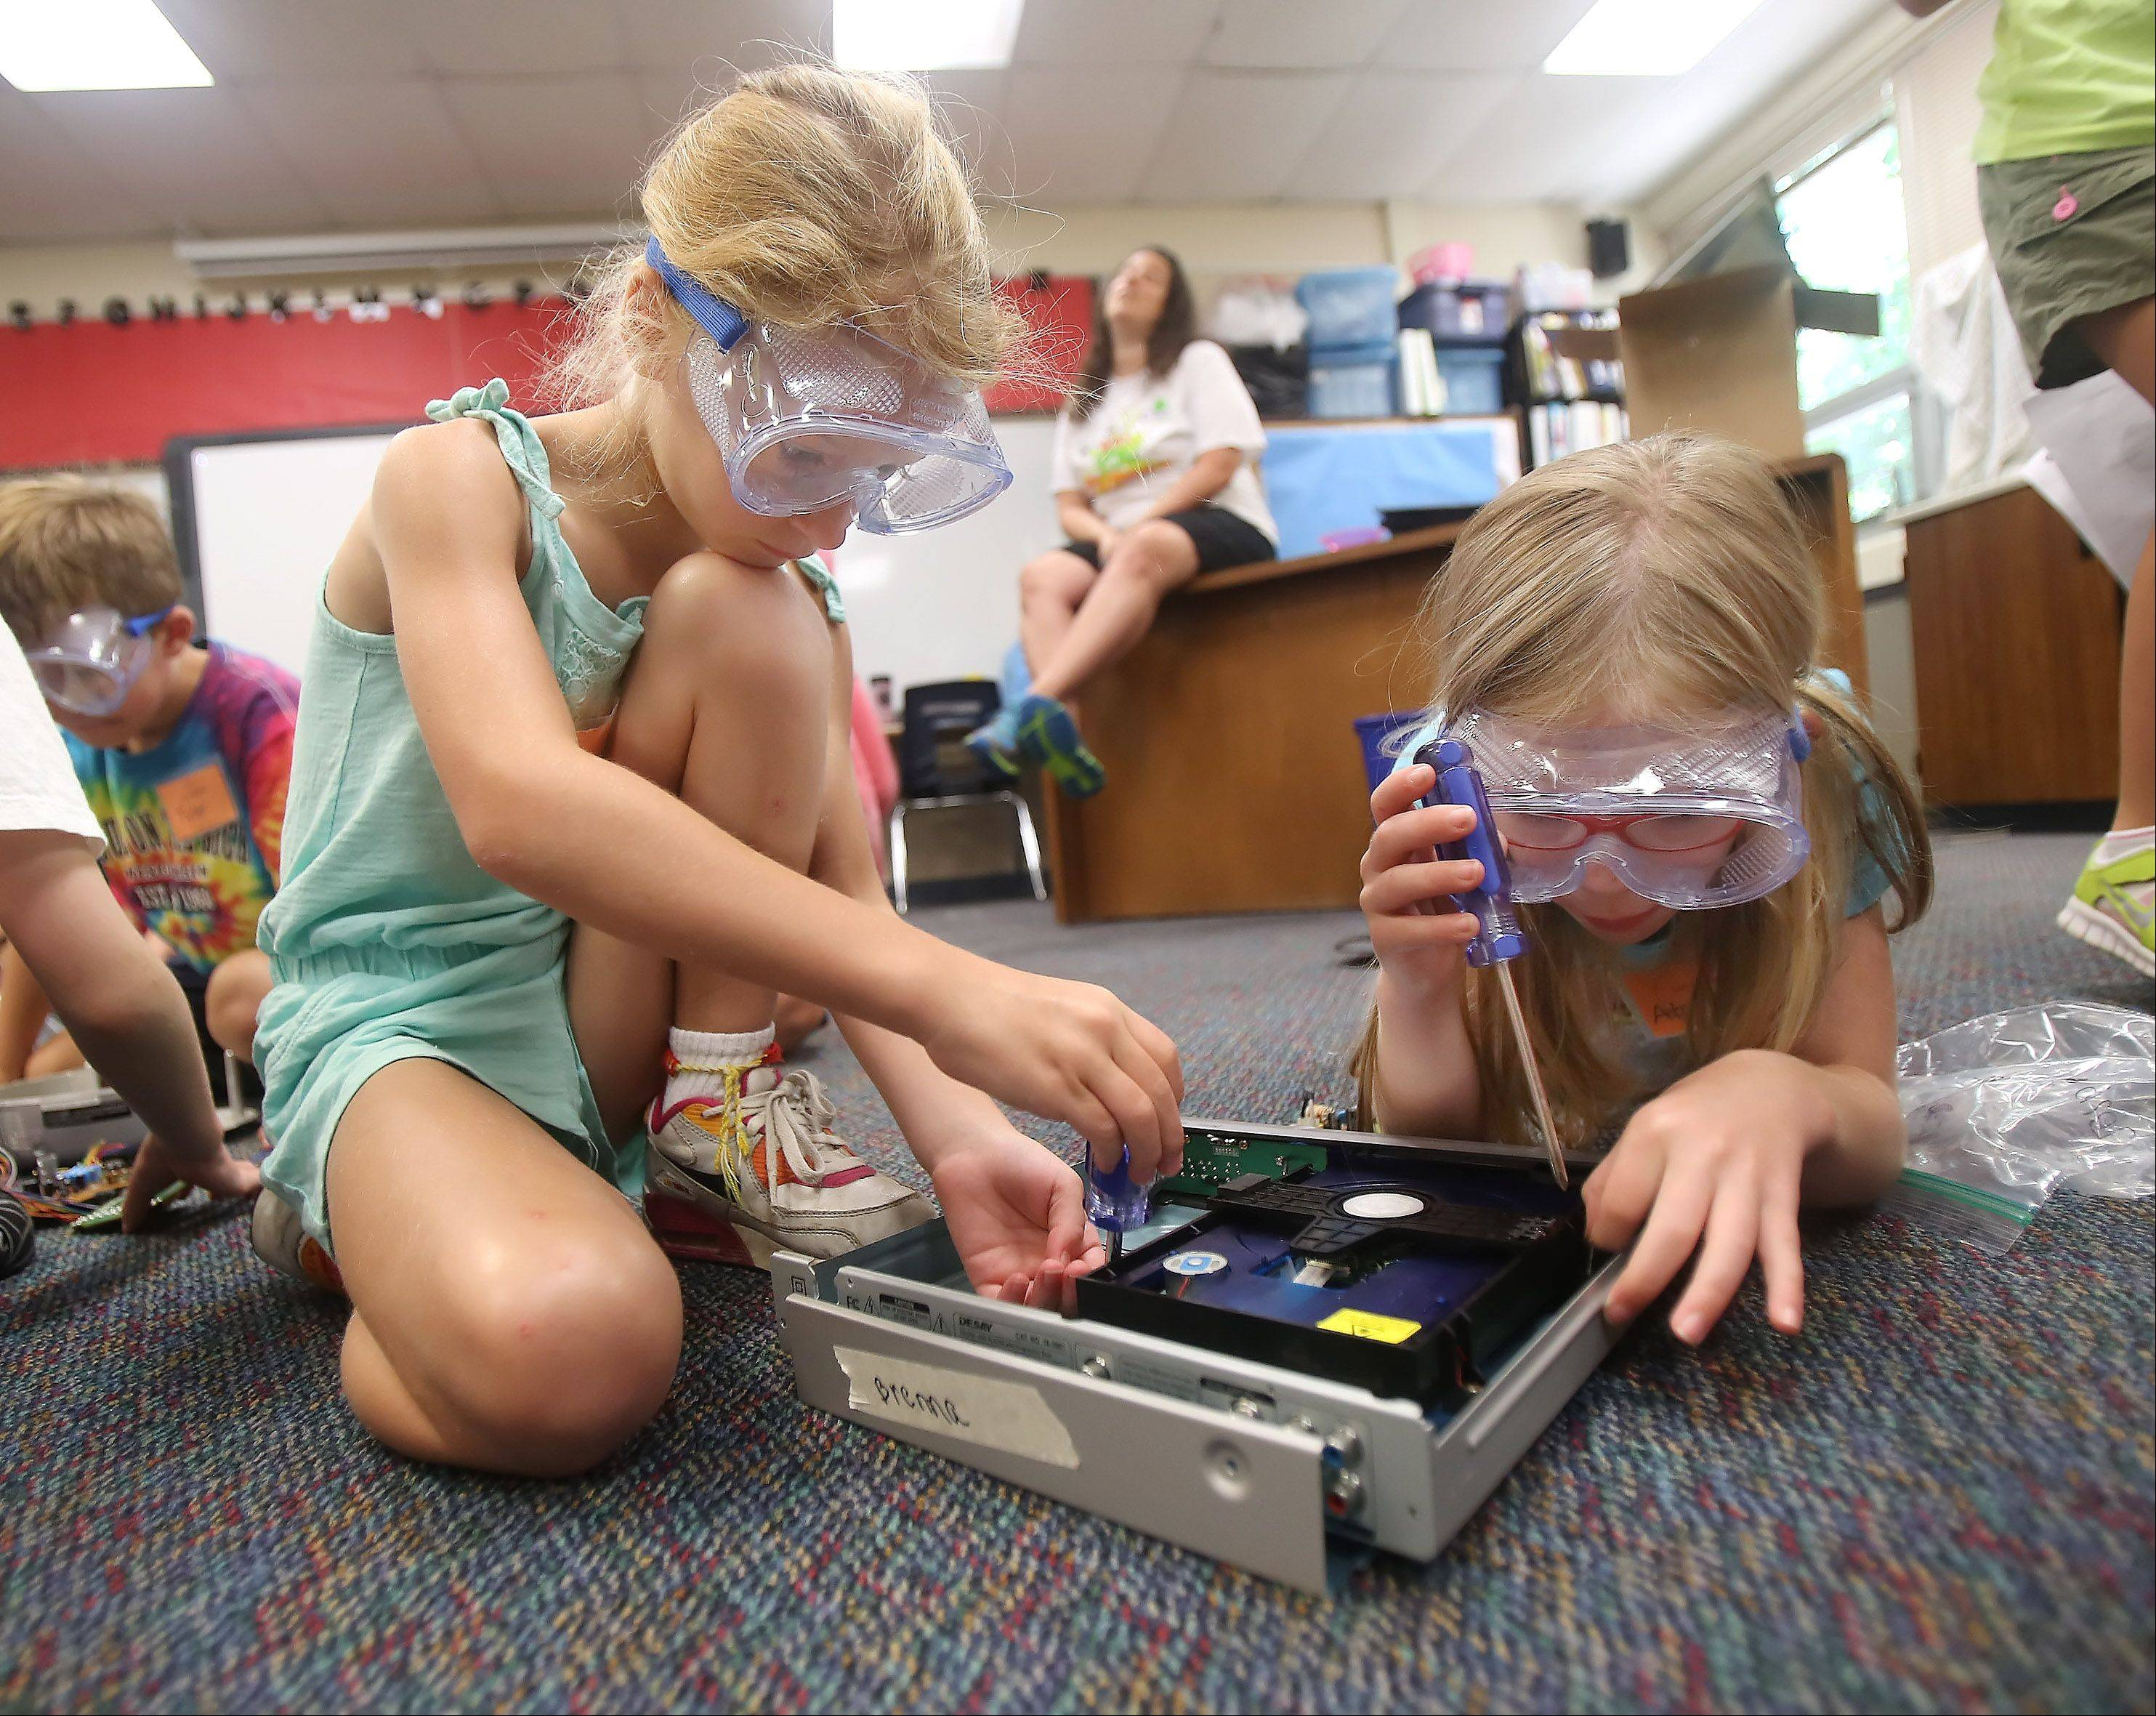 Seven-year-olds Brenna Hornsey, left, and Atalhea Herman, both of Libertyville, take a computer apart during Camp Invention Wednesday at Rockland School in Libertyville. The Libertyville School District 70 summer program featured creative activities for elementary school age students.